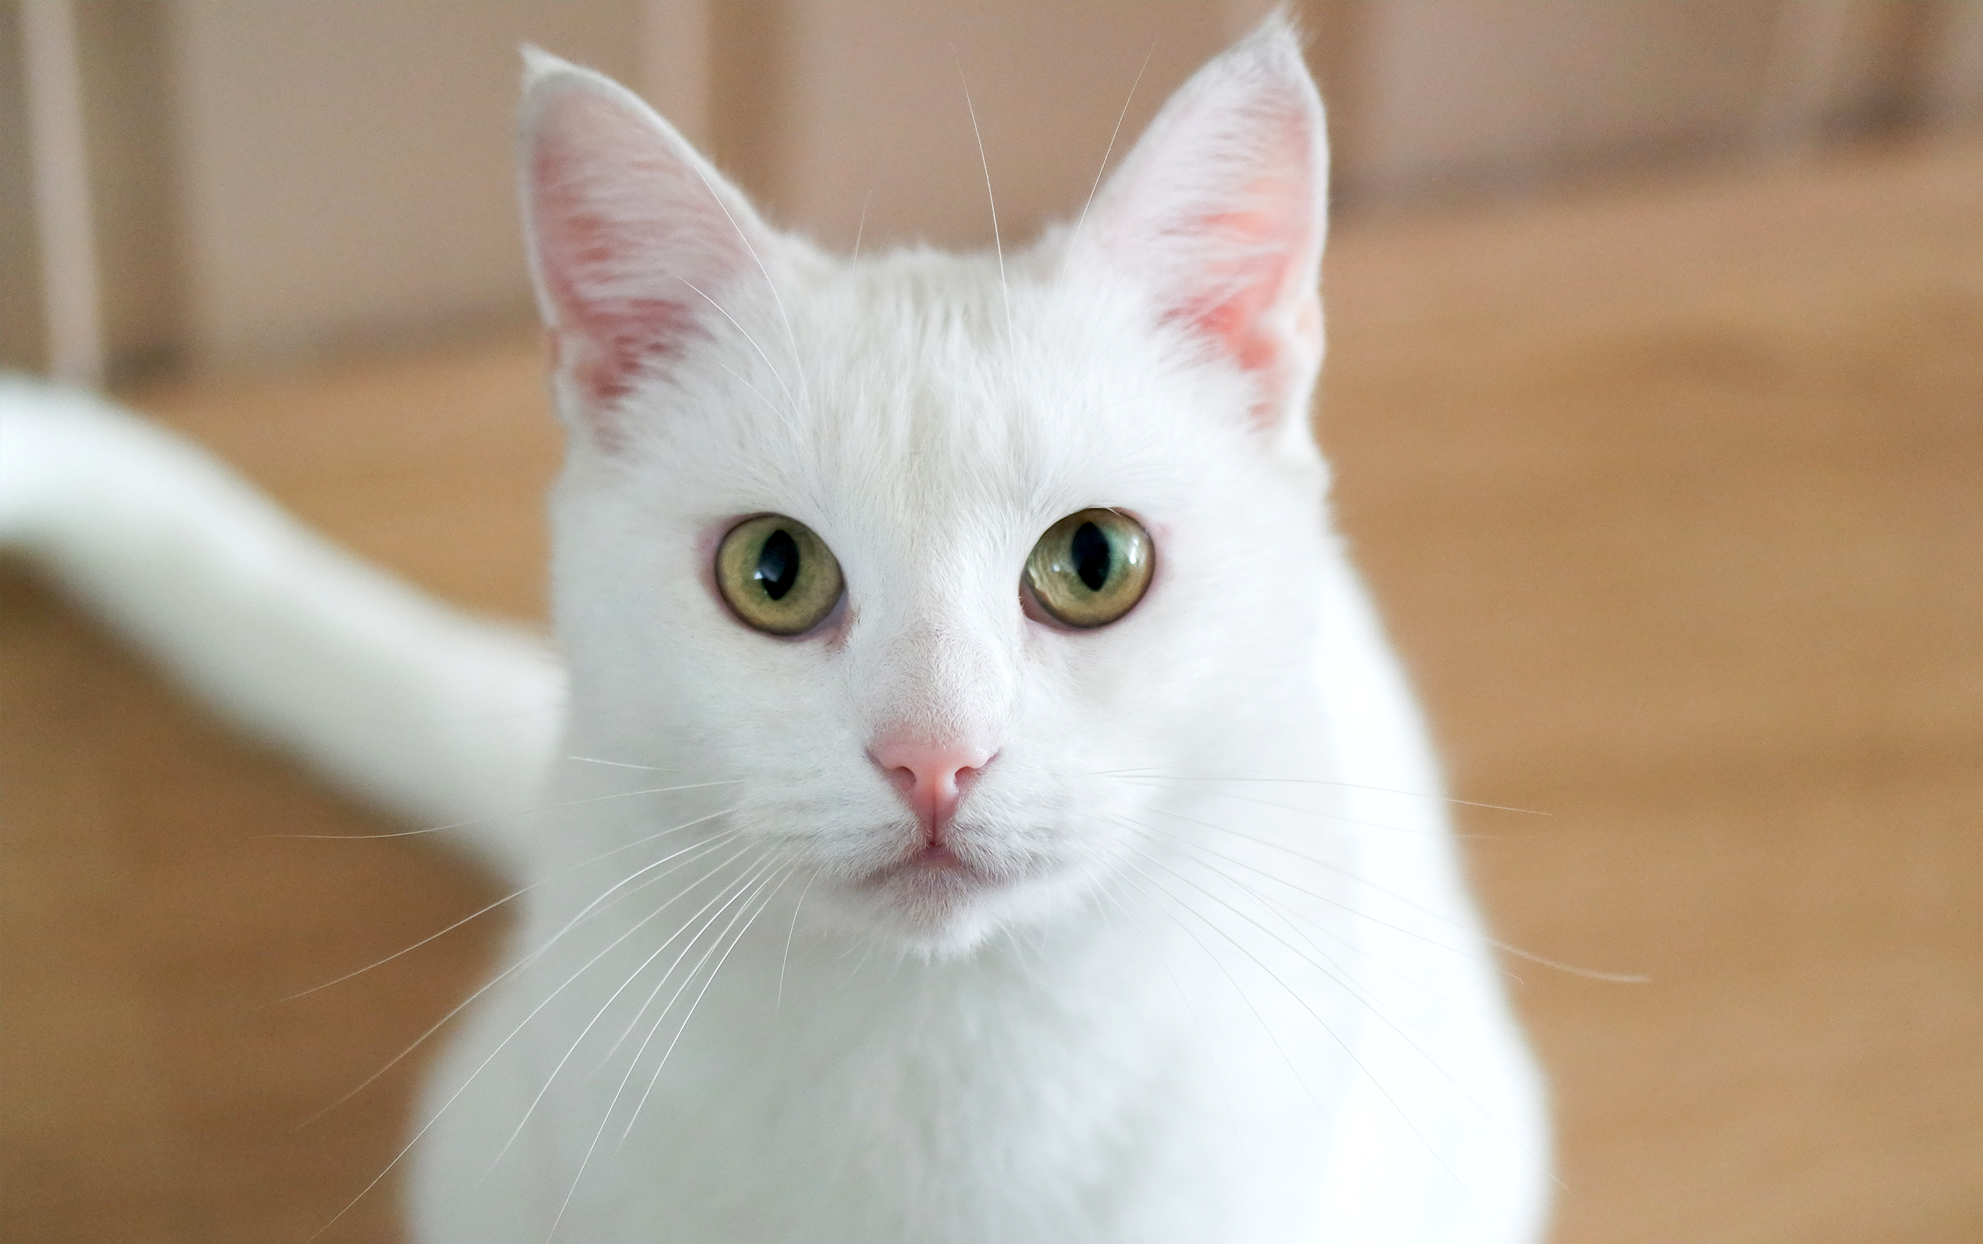 Close up of a white cat with green eyes